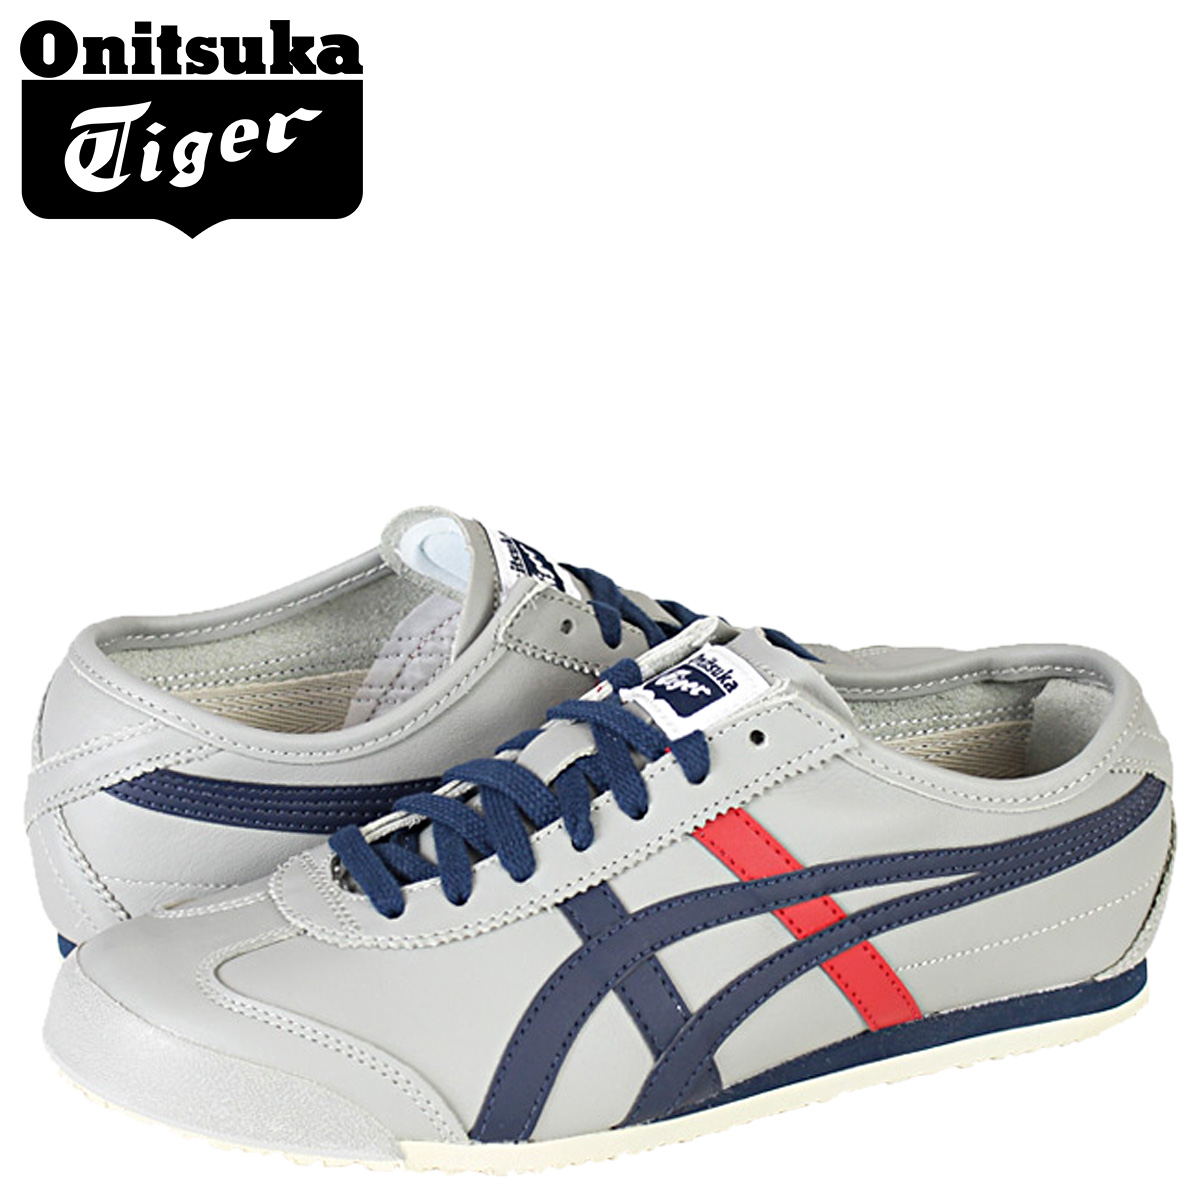 separation shoes 89b23 d8d96 Onitsuka Tiger ASICs Onitsuka Tiger asics MEXICO 66 sneaker Mexico 66  leather mens Womens TH4J 2L-1350 light grey / Navy unisex [2 / 14 new in  stock] ...